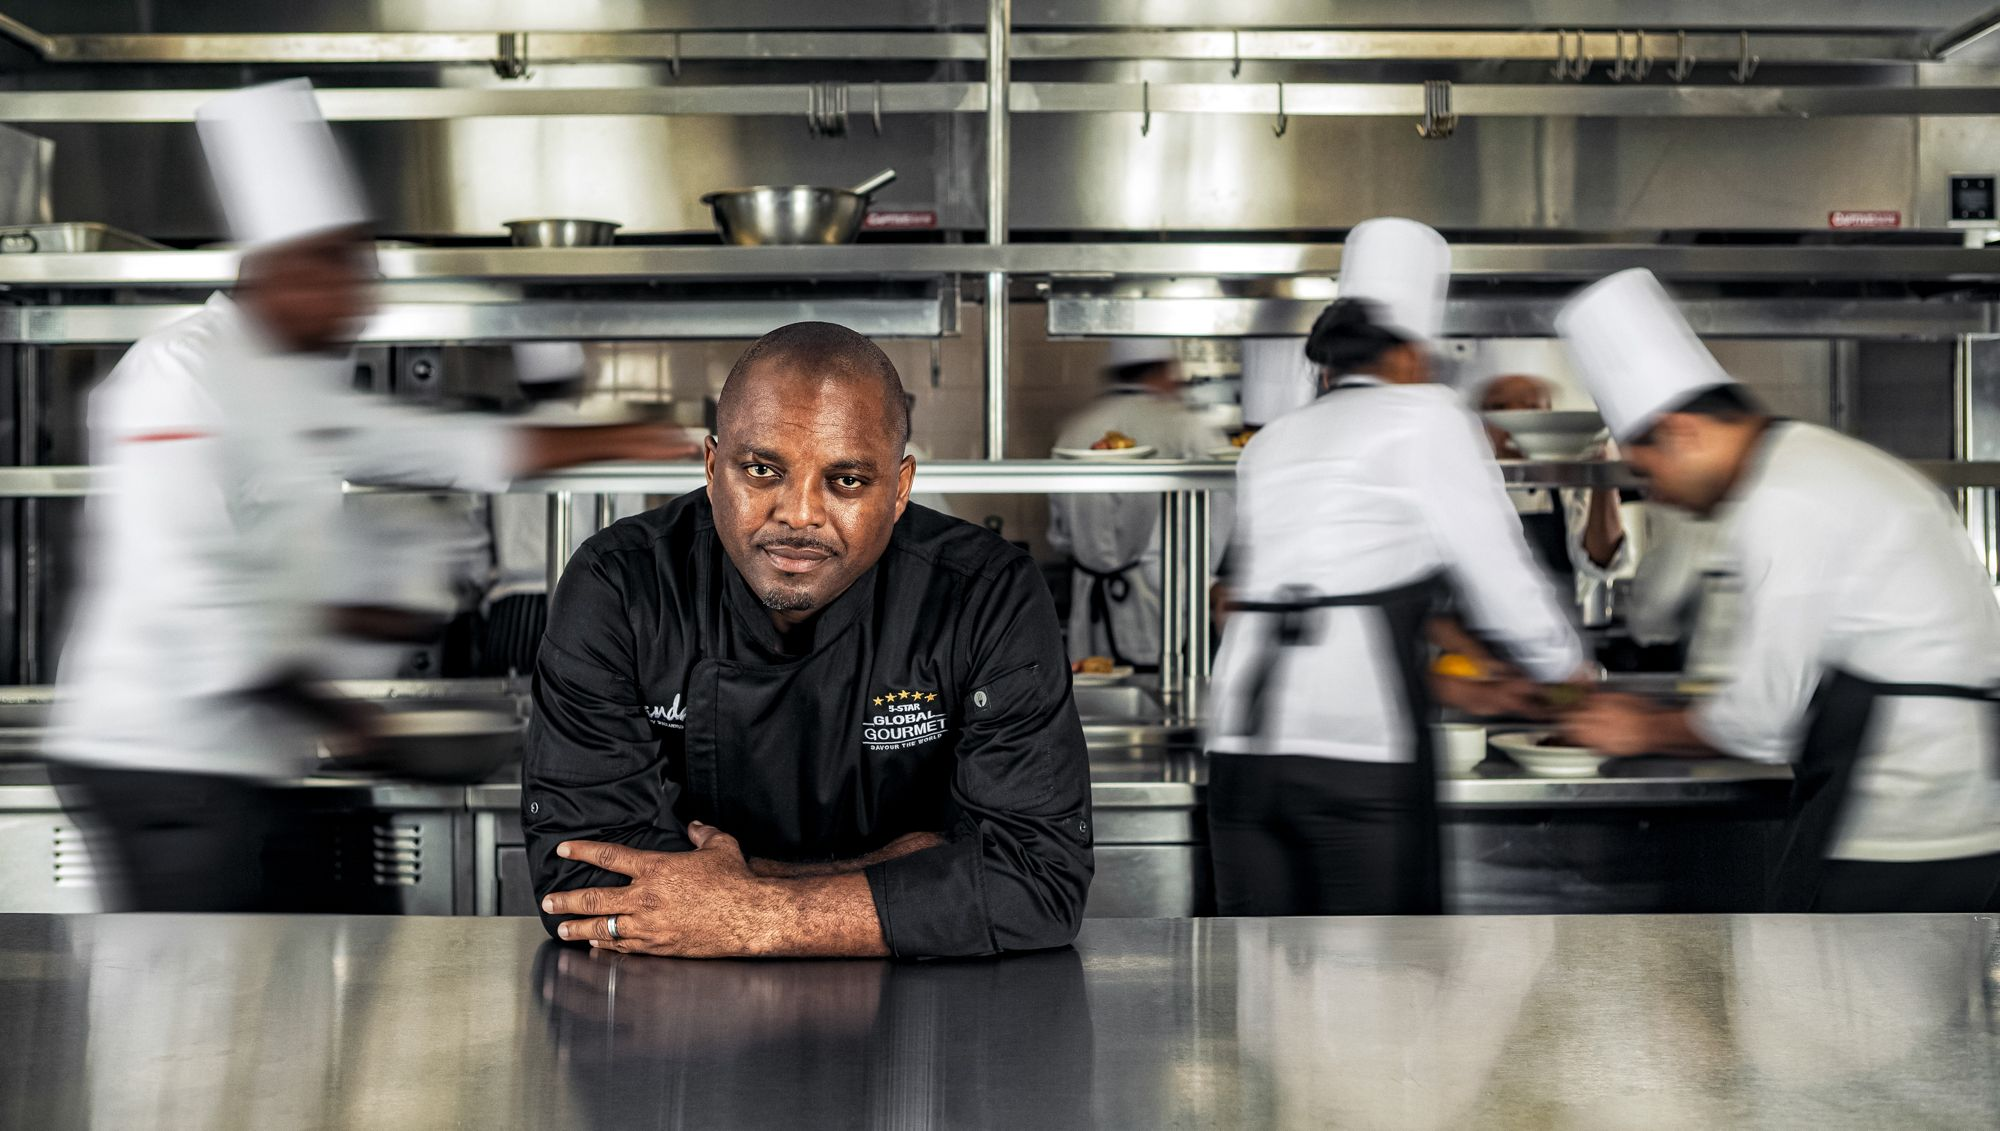 Sandals Senior Executive Chef Glenroy Walker